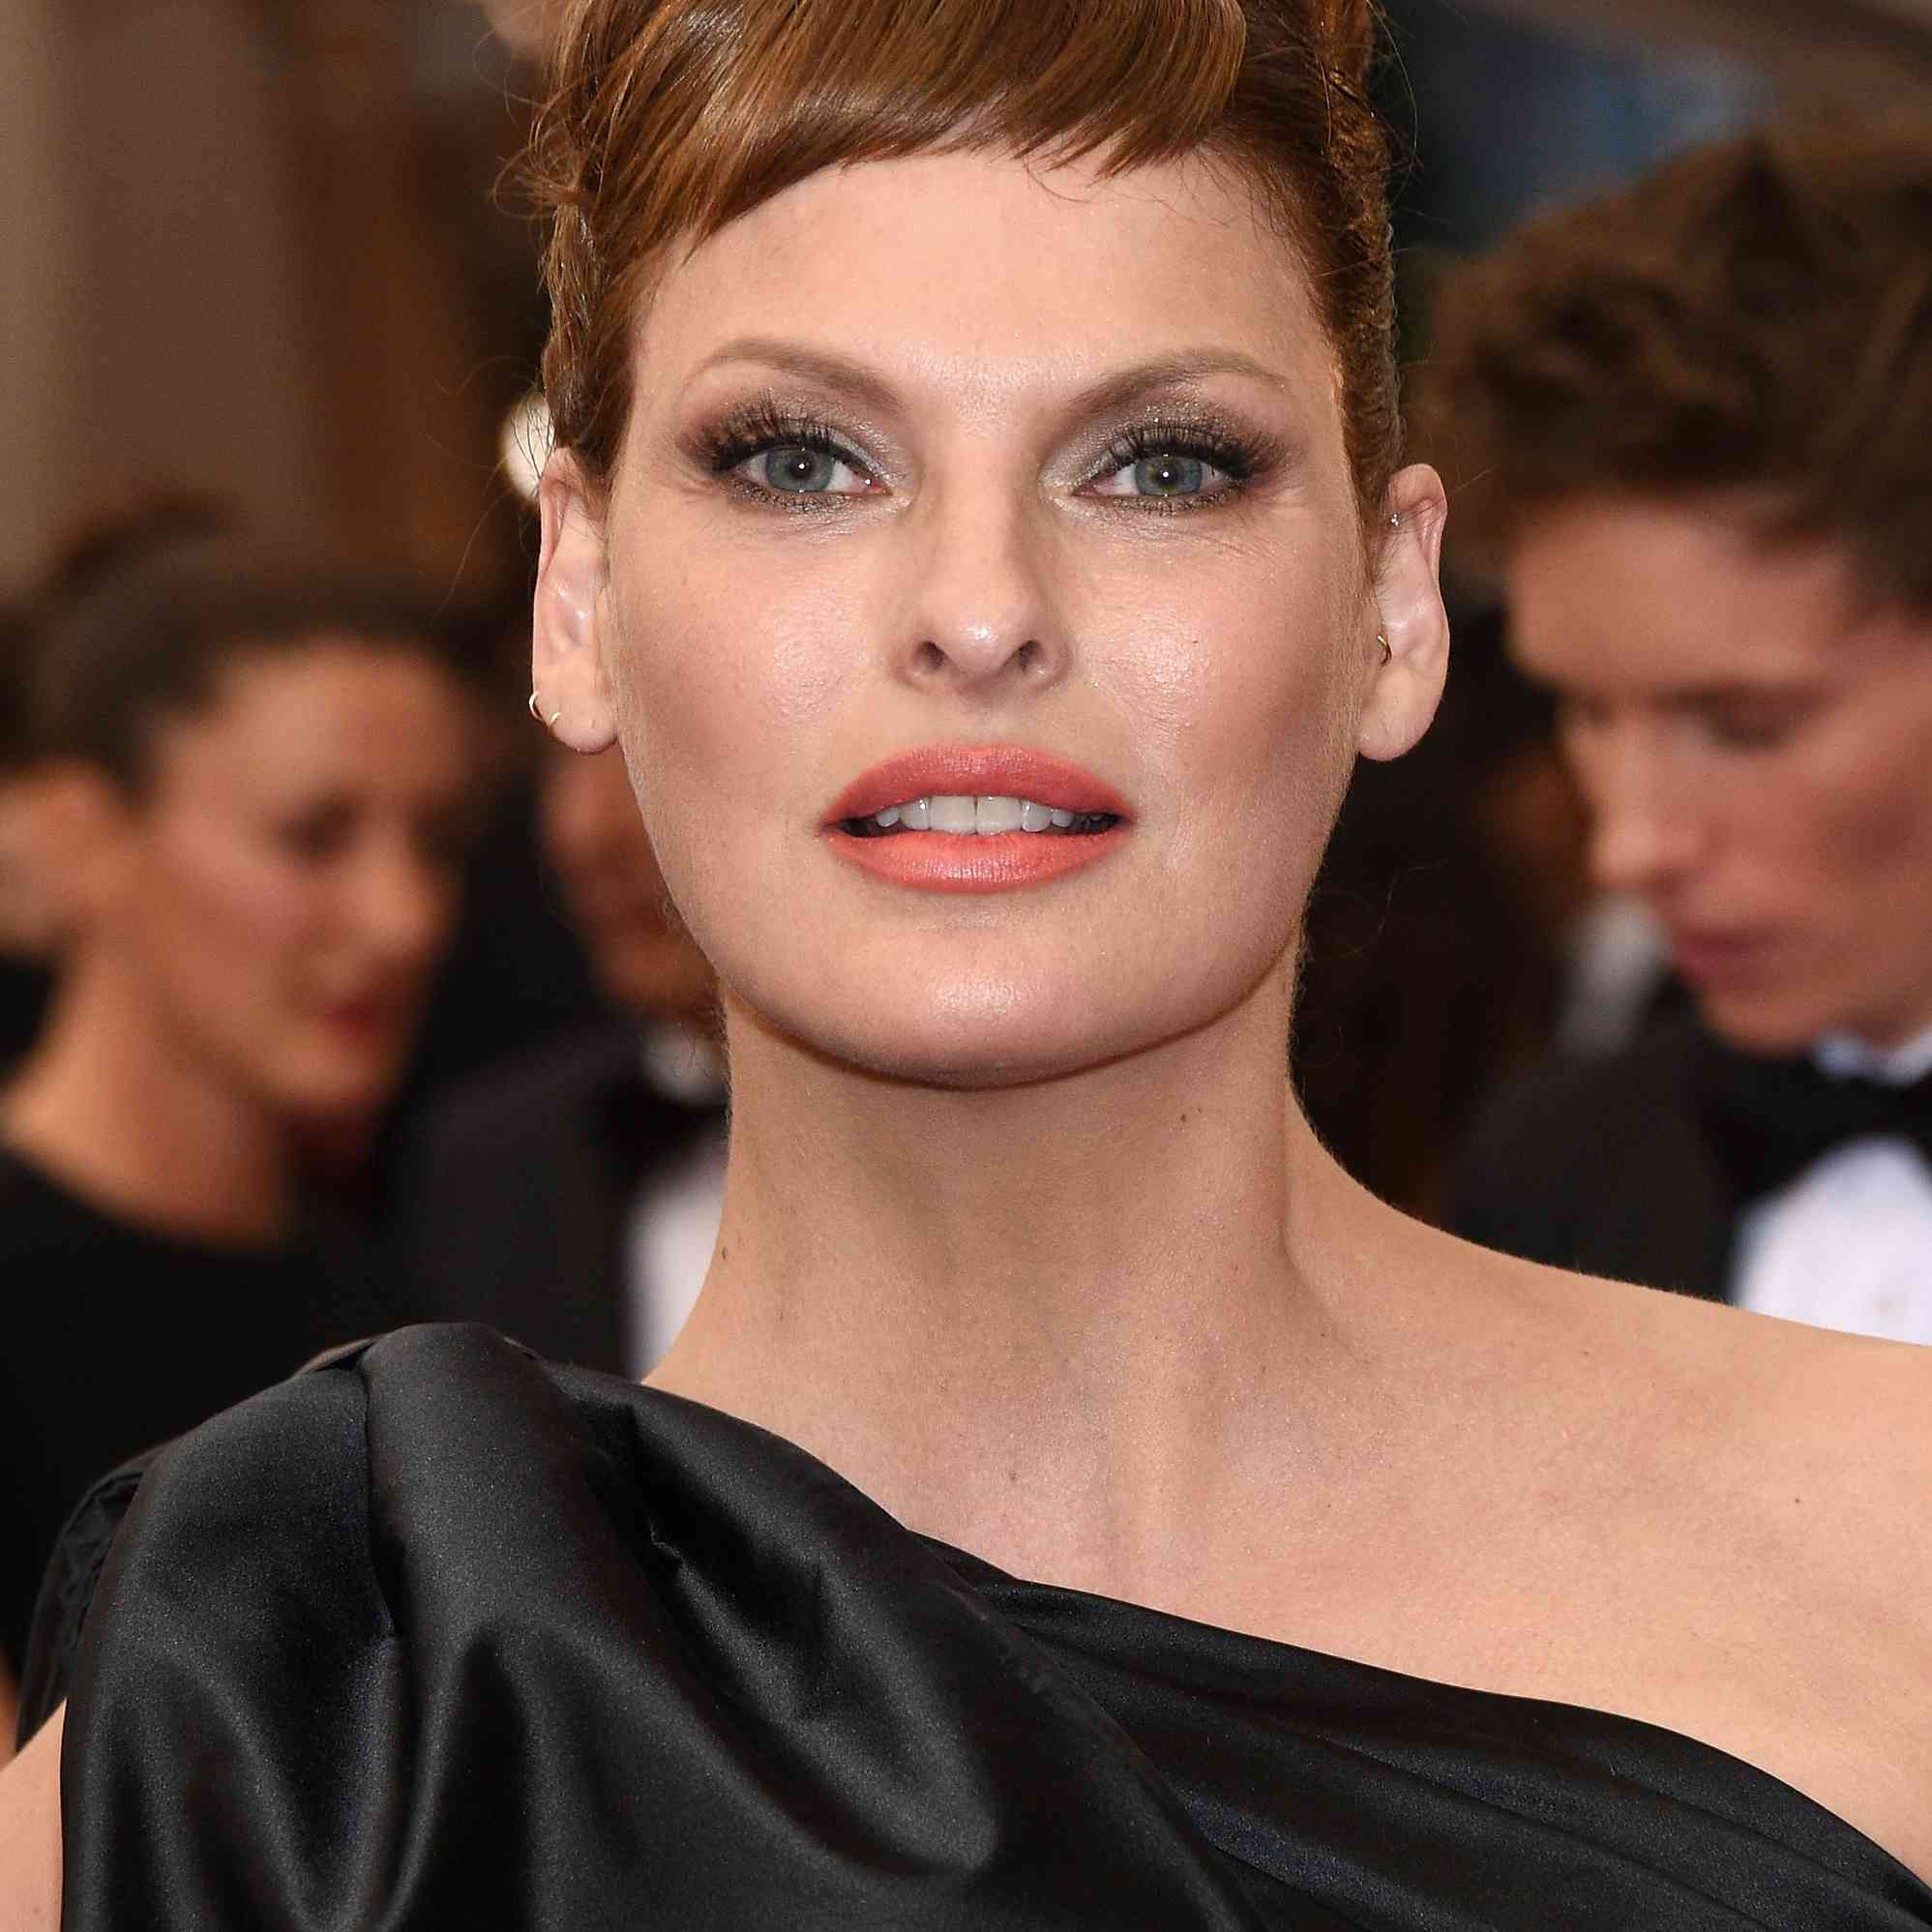 Linda Evangelista attends the 'China: Through The Looking Glass' Costume Institute Benefit Gala at the Metropolitan Museum of Art on May 4, 2015 in New York City.